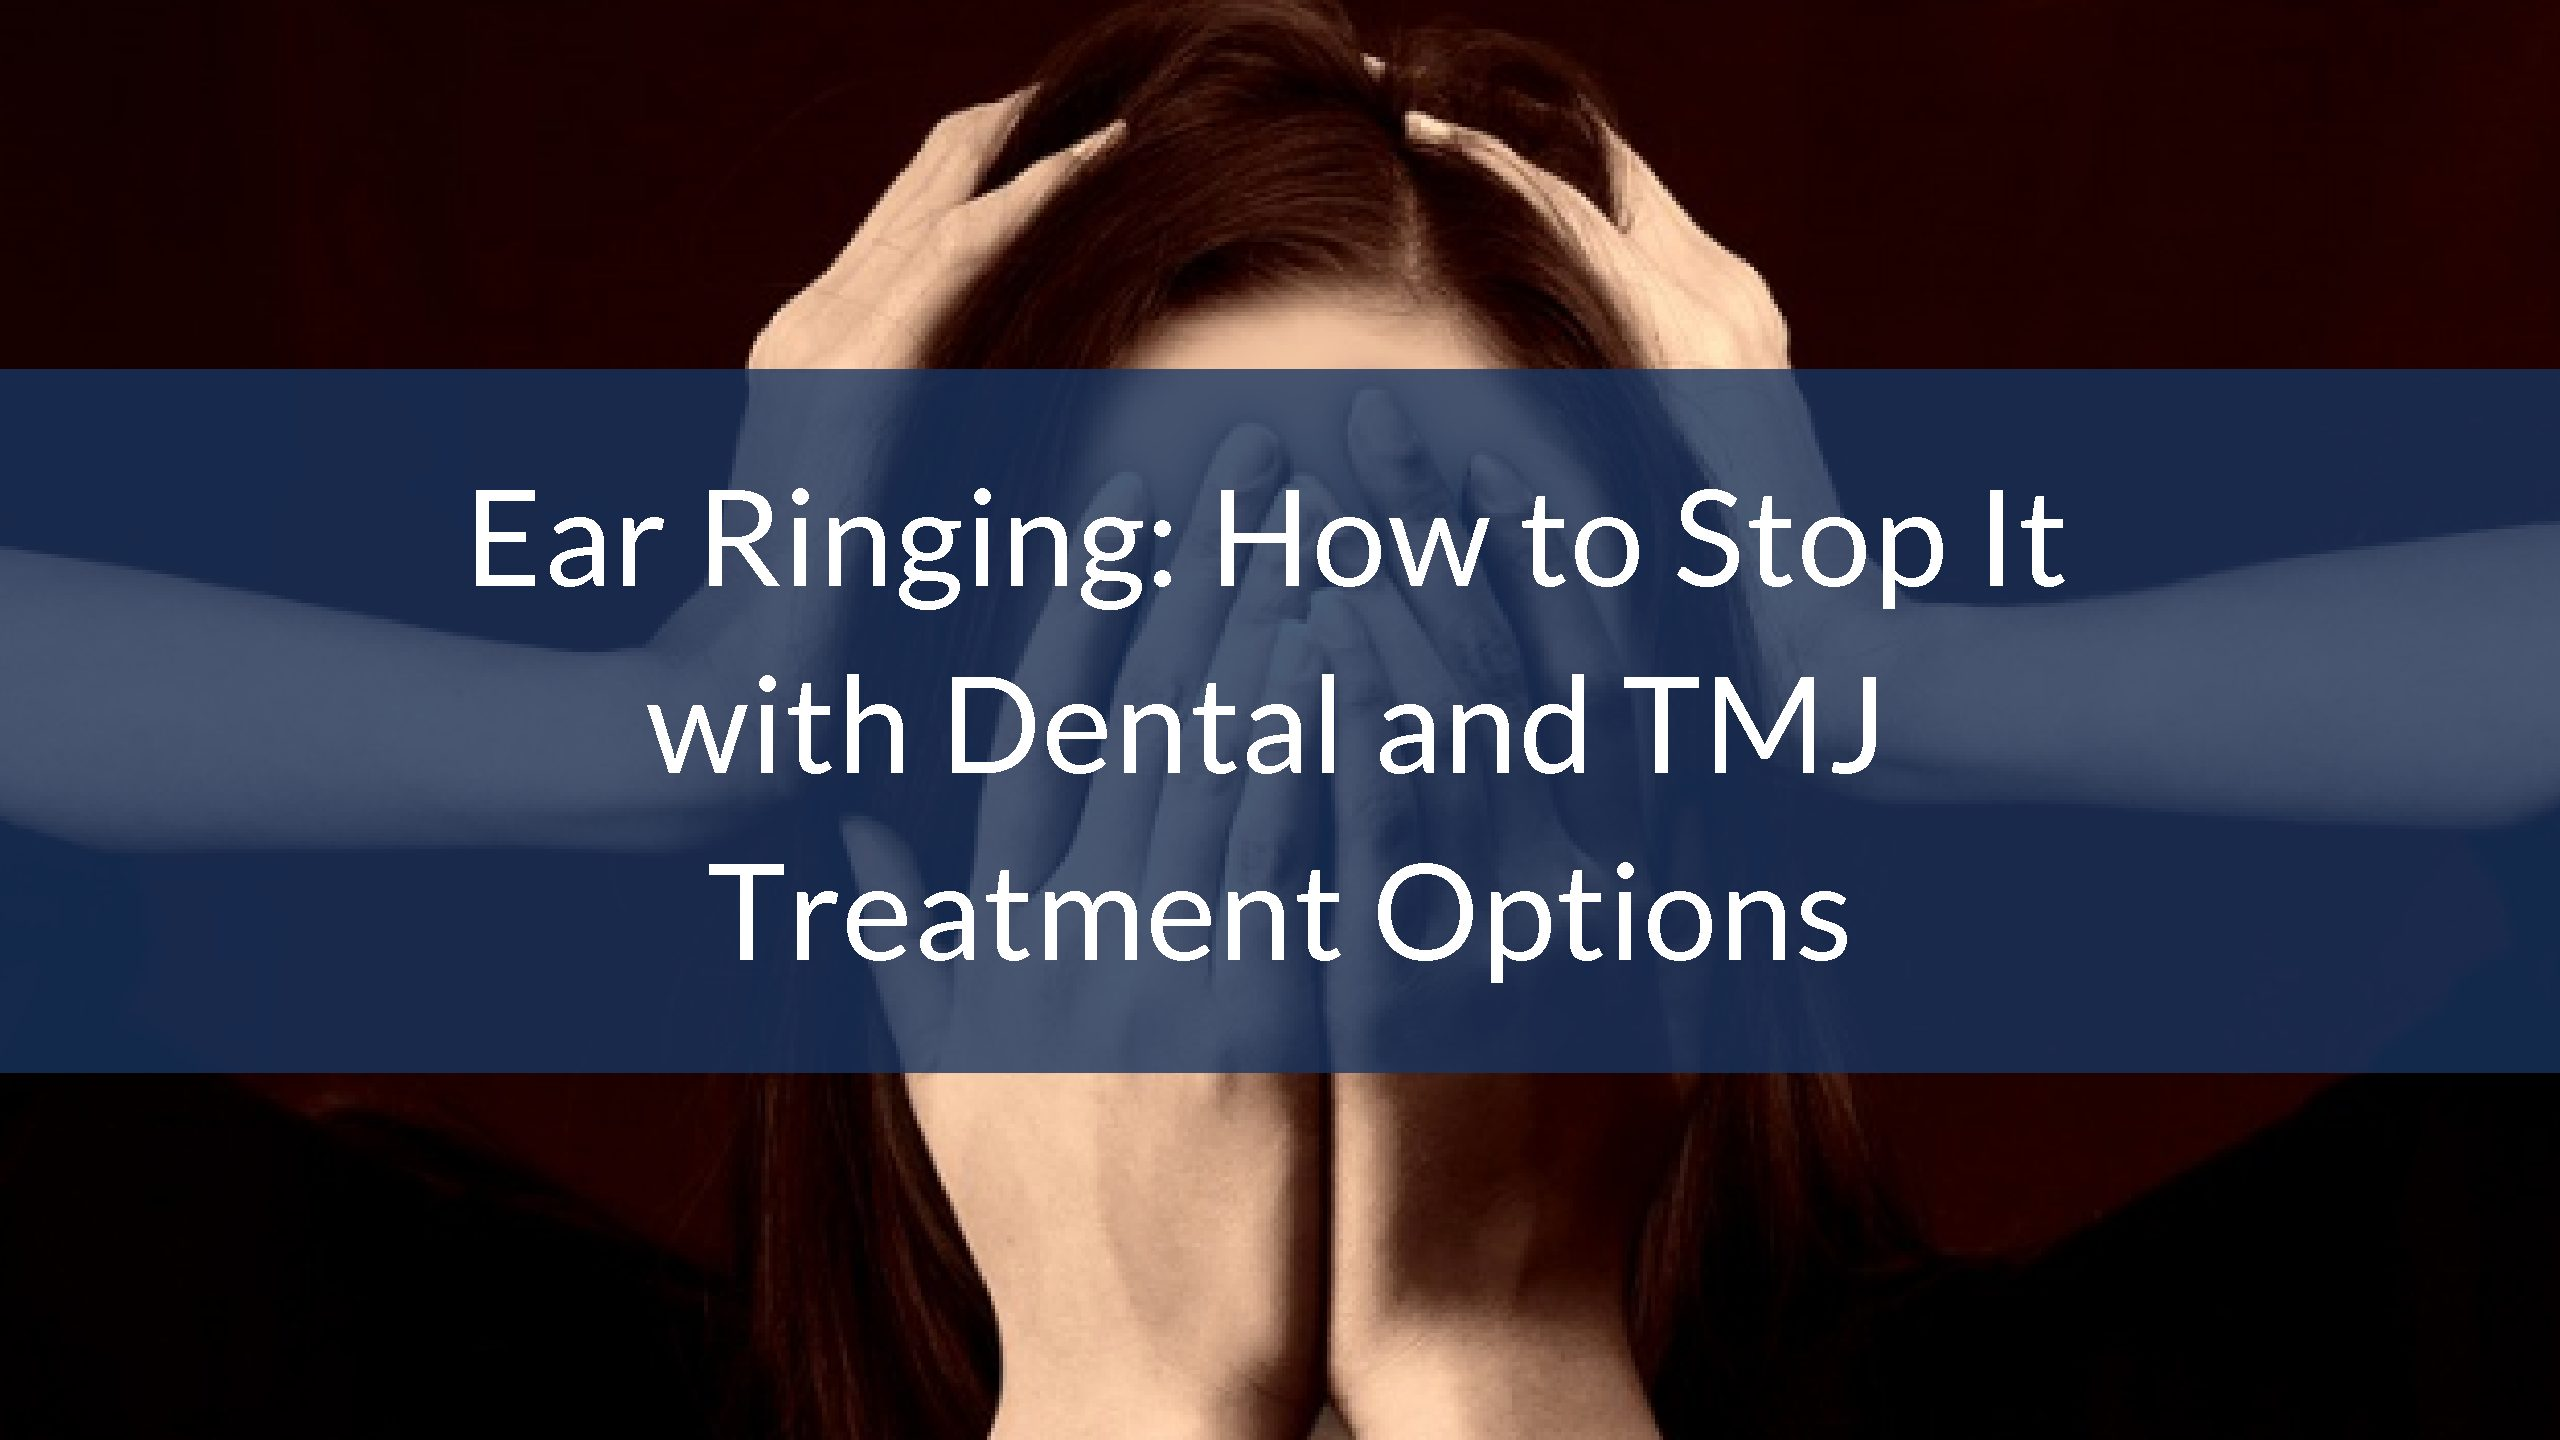 Ear Ringing: How to Stop it with Dental and TMJ Treatment Options